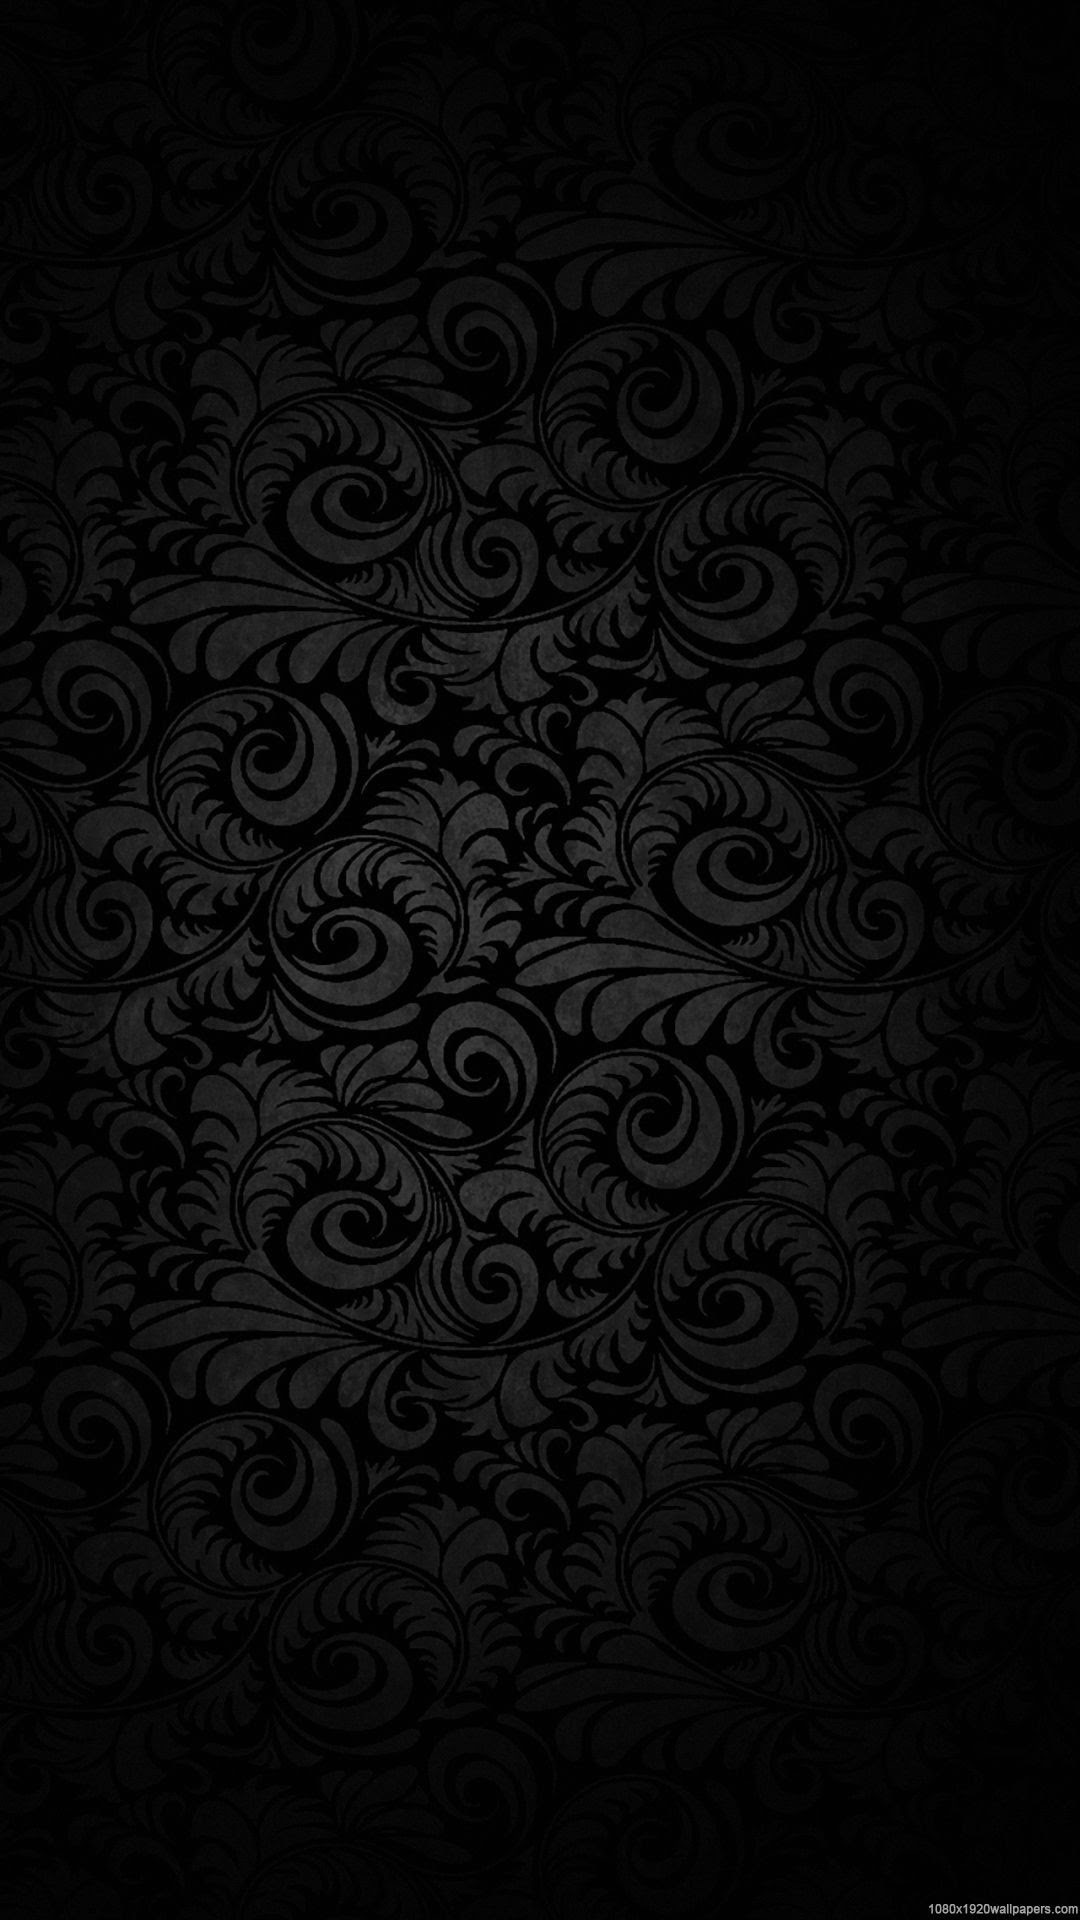 20+ New For Background Black Wallpaper Hd 1080p For Mobile